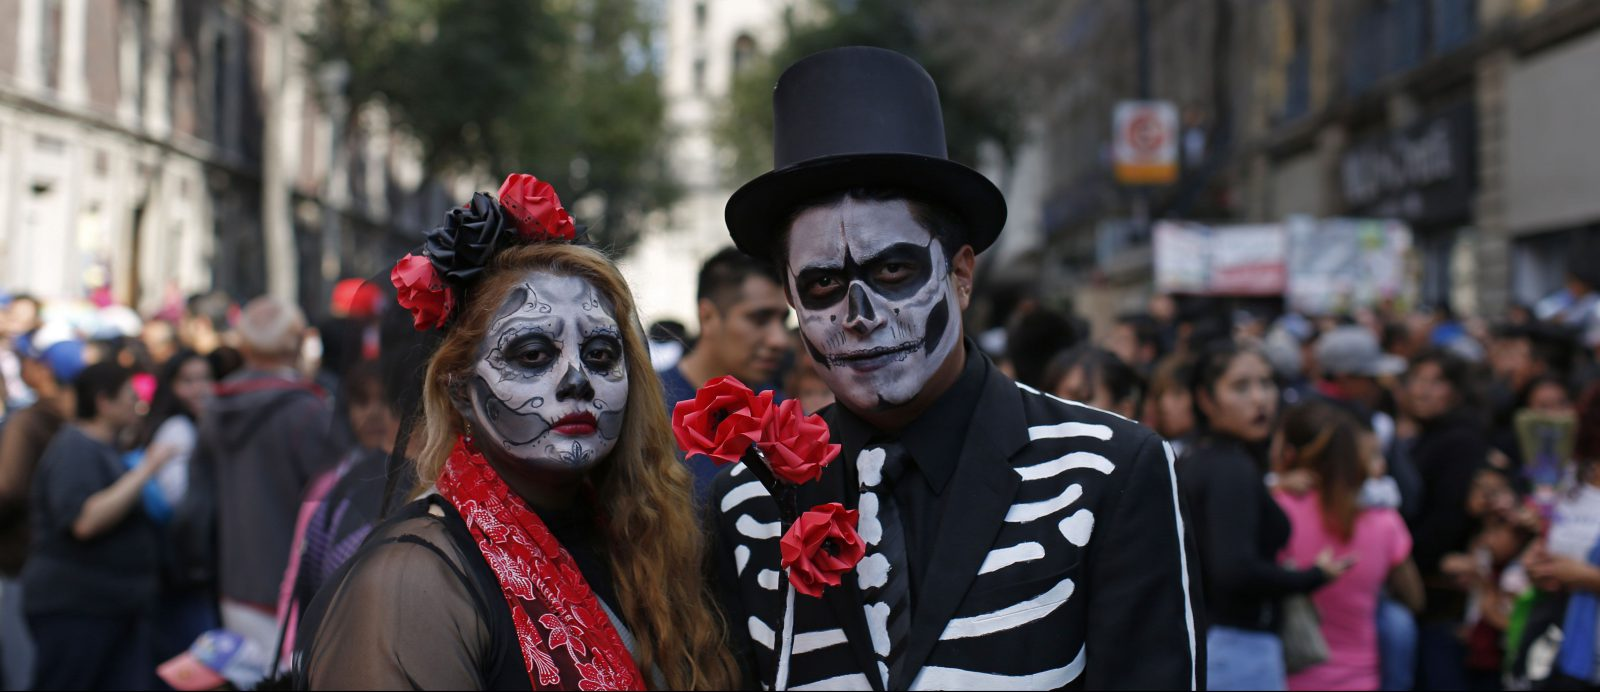 Mexico Day of the Dead, James Bond